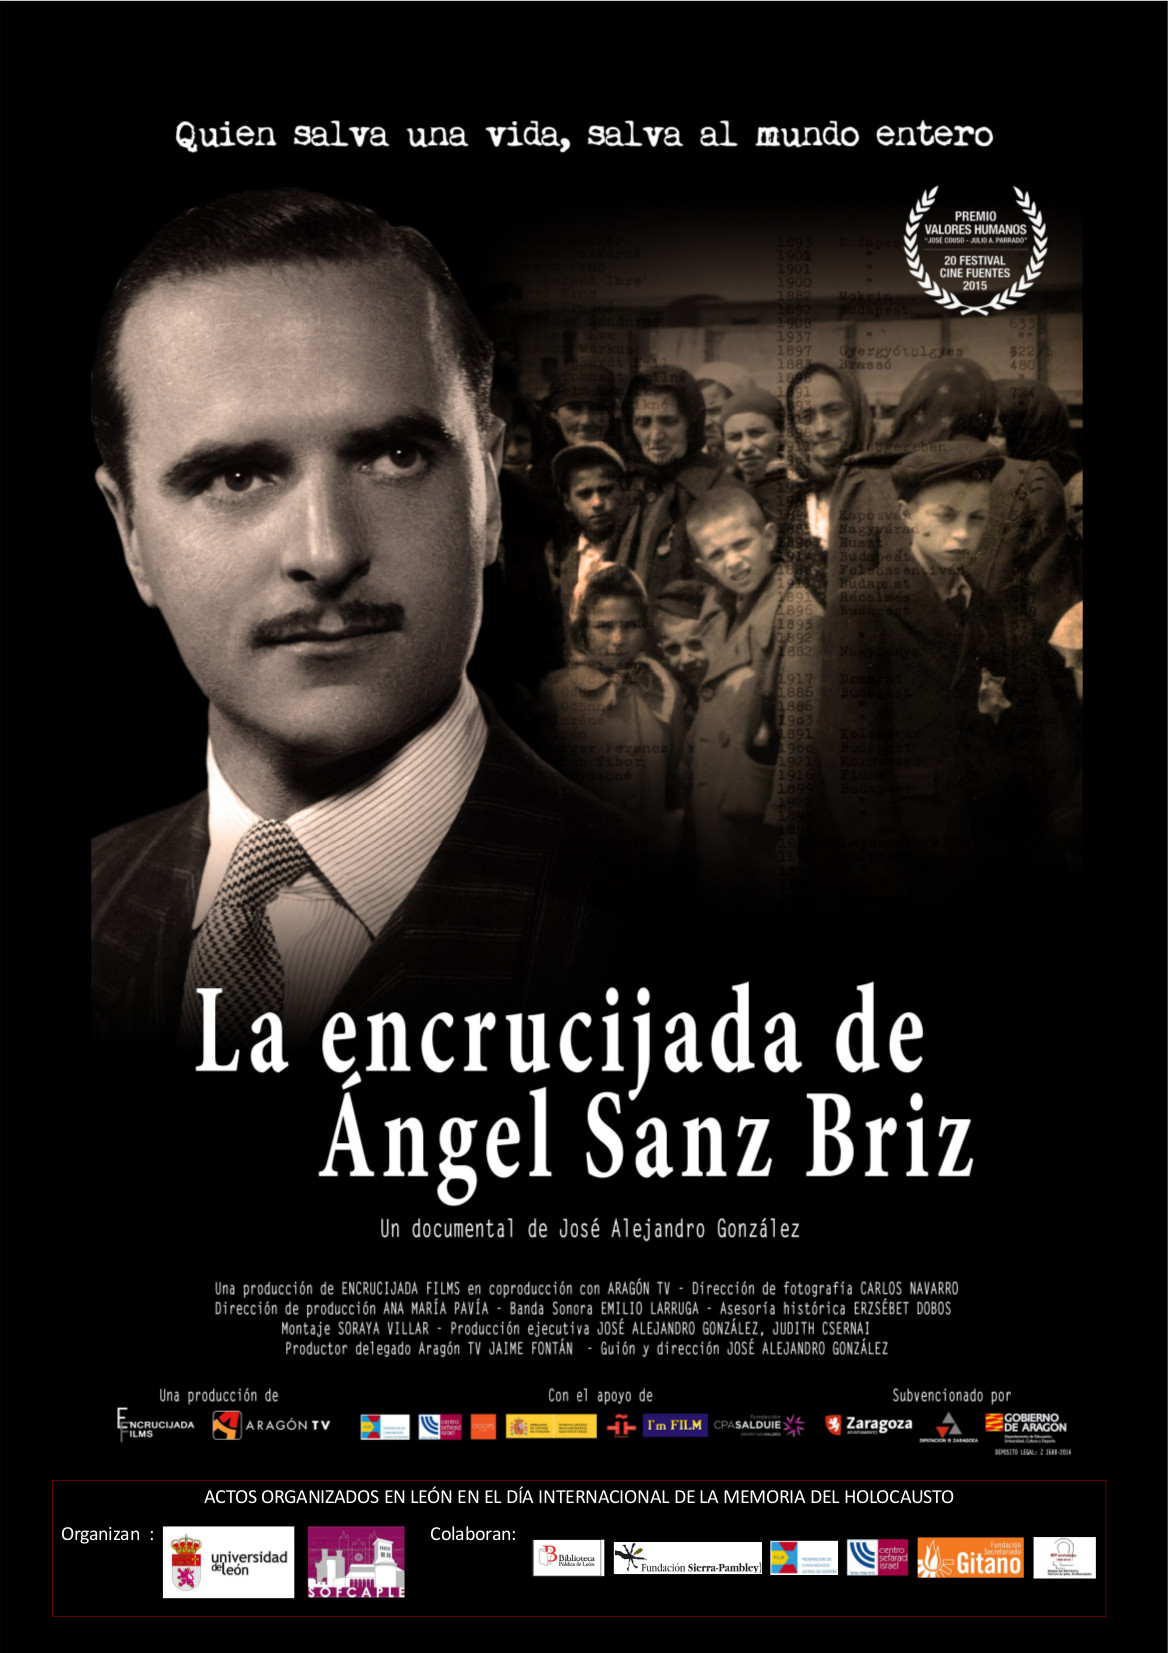 HOLOCAUSTO. CARTEL DOCUMENTAL